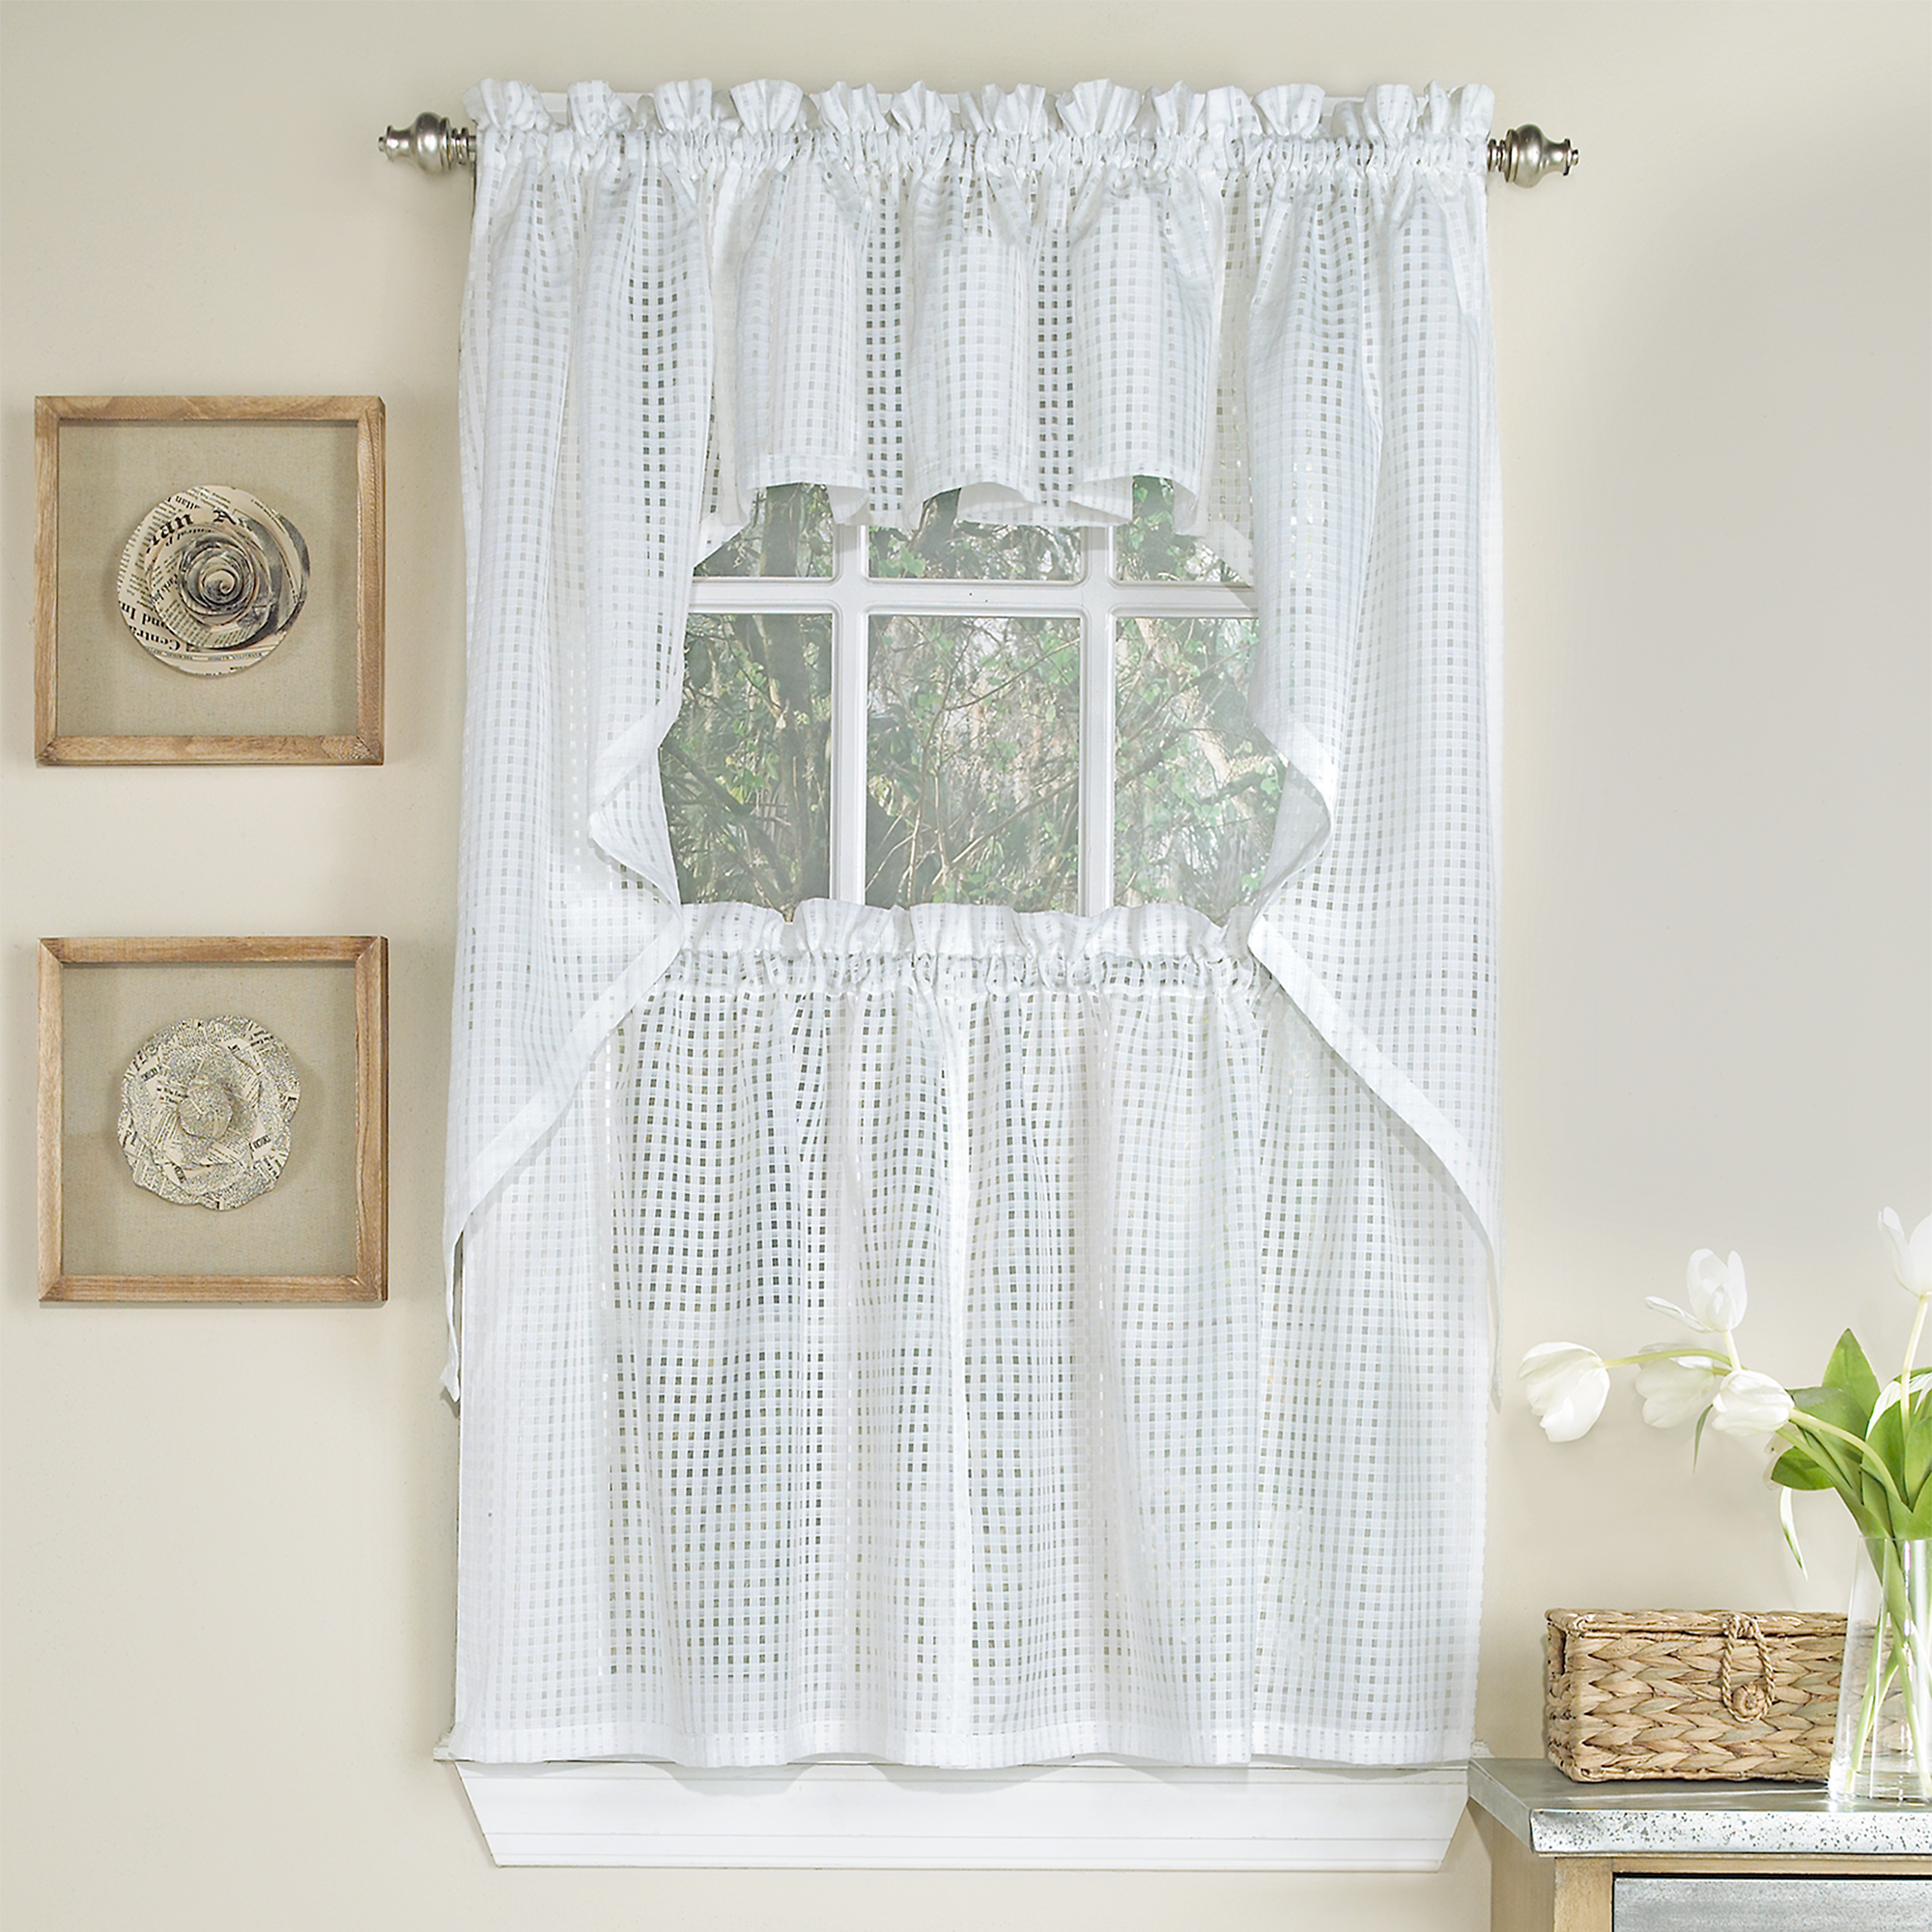 Details About Micro Check 2 Tone White Semi Sheer Window Curtain Tiers, Valance, Or Swag Pertaining To Semi Sheer Rod Pocket Kitchen Curtain Valance And Tiers Sets (View 5 of 20)